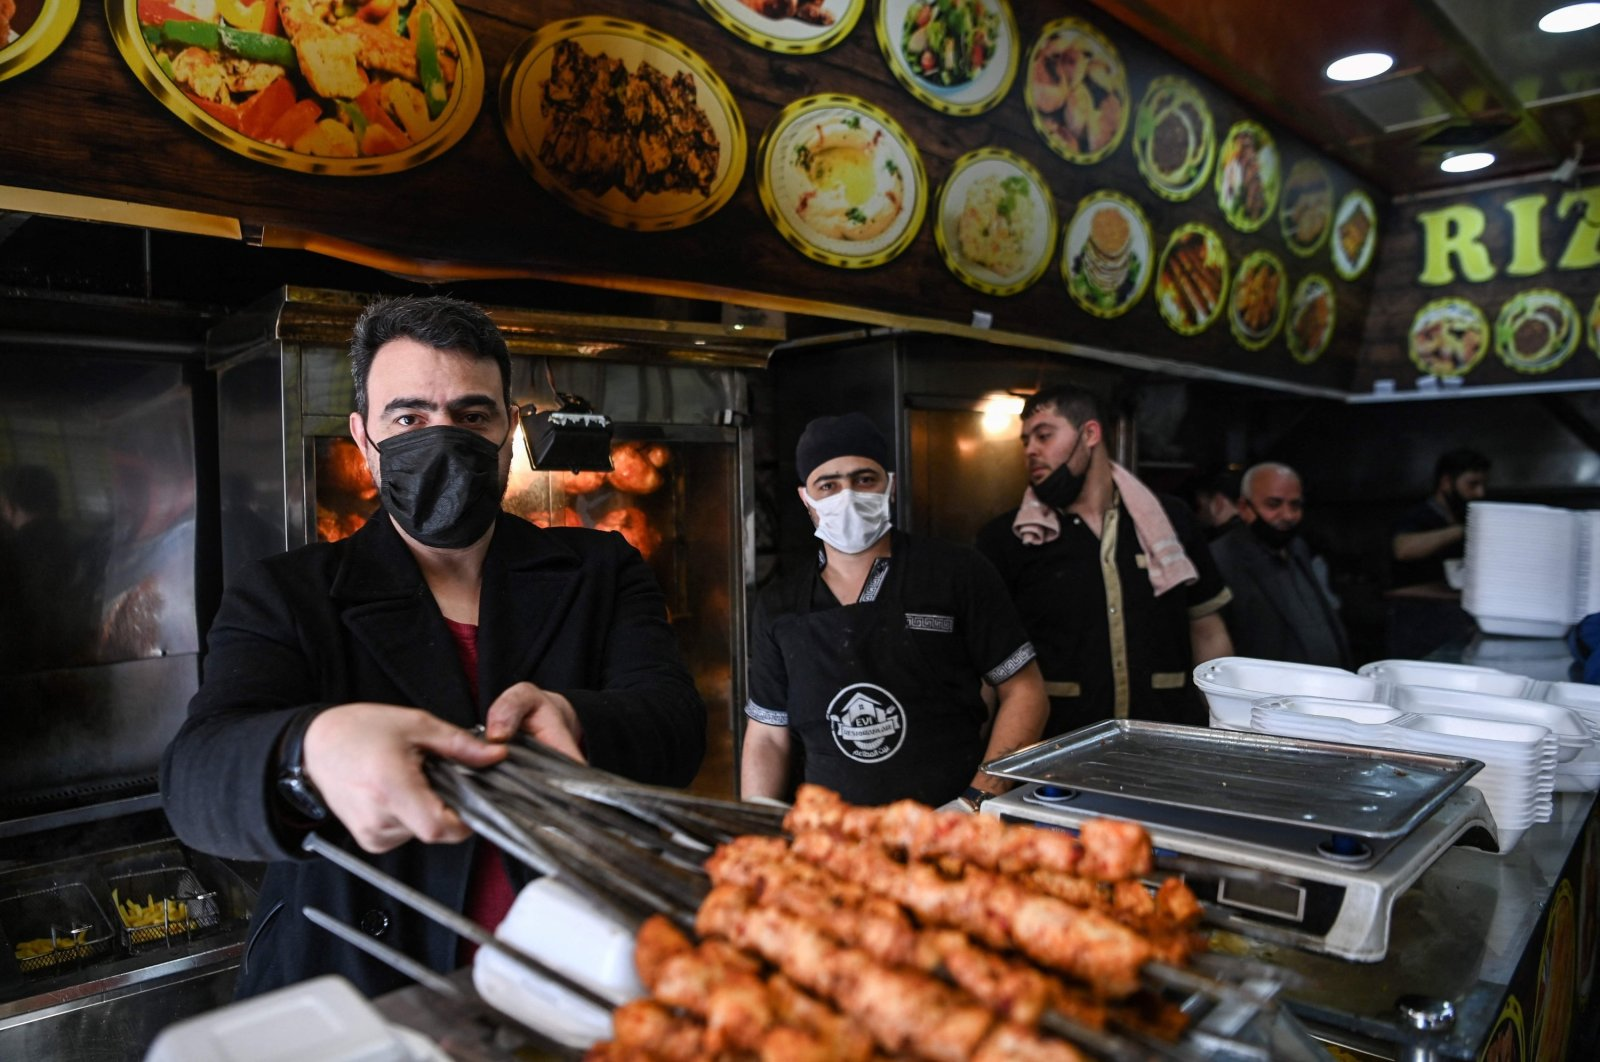 Syrian restaurant owner Ismail Abtini (L), 42, poses during an interview, in Gaziantep, Turkey, Feb. 25, 2021. (AFP)